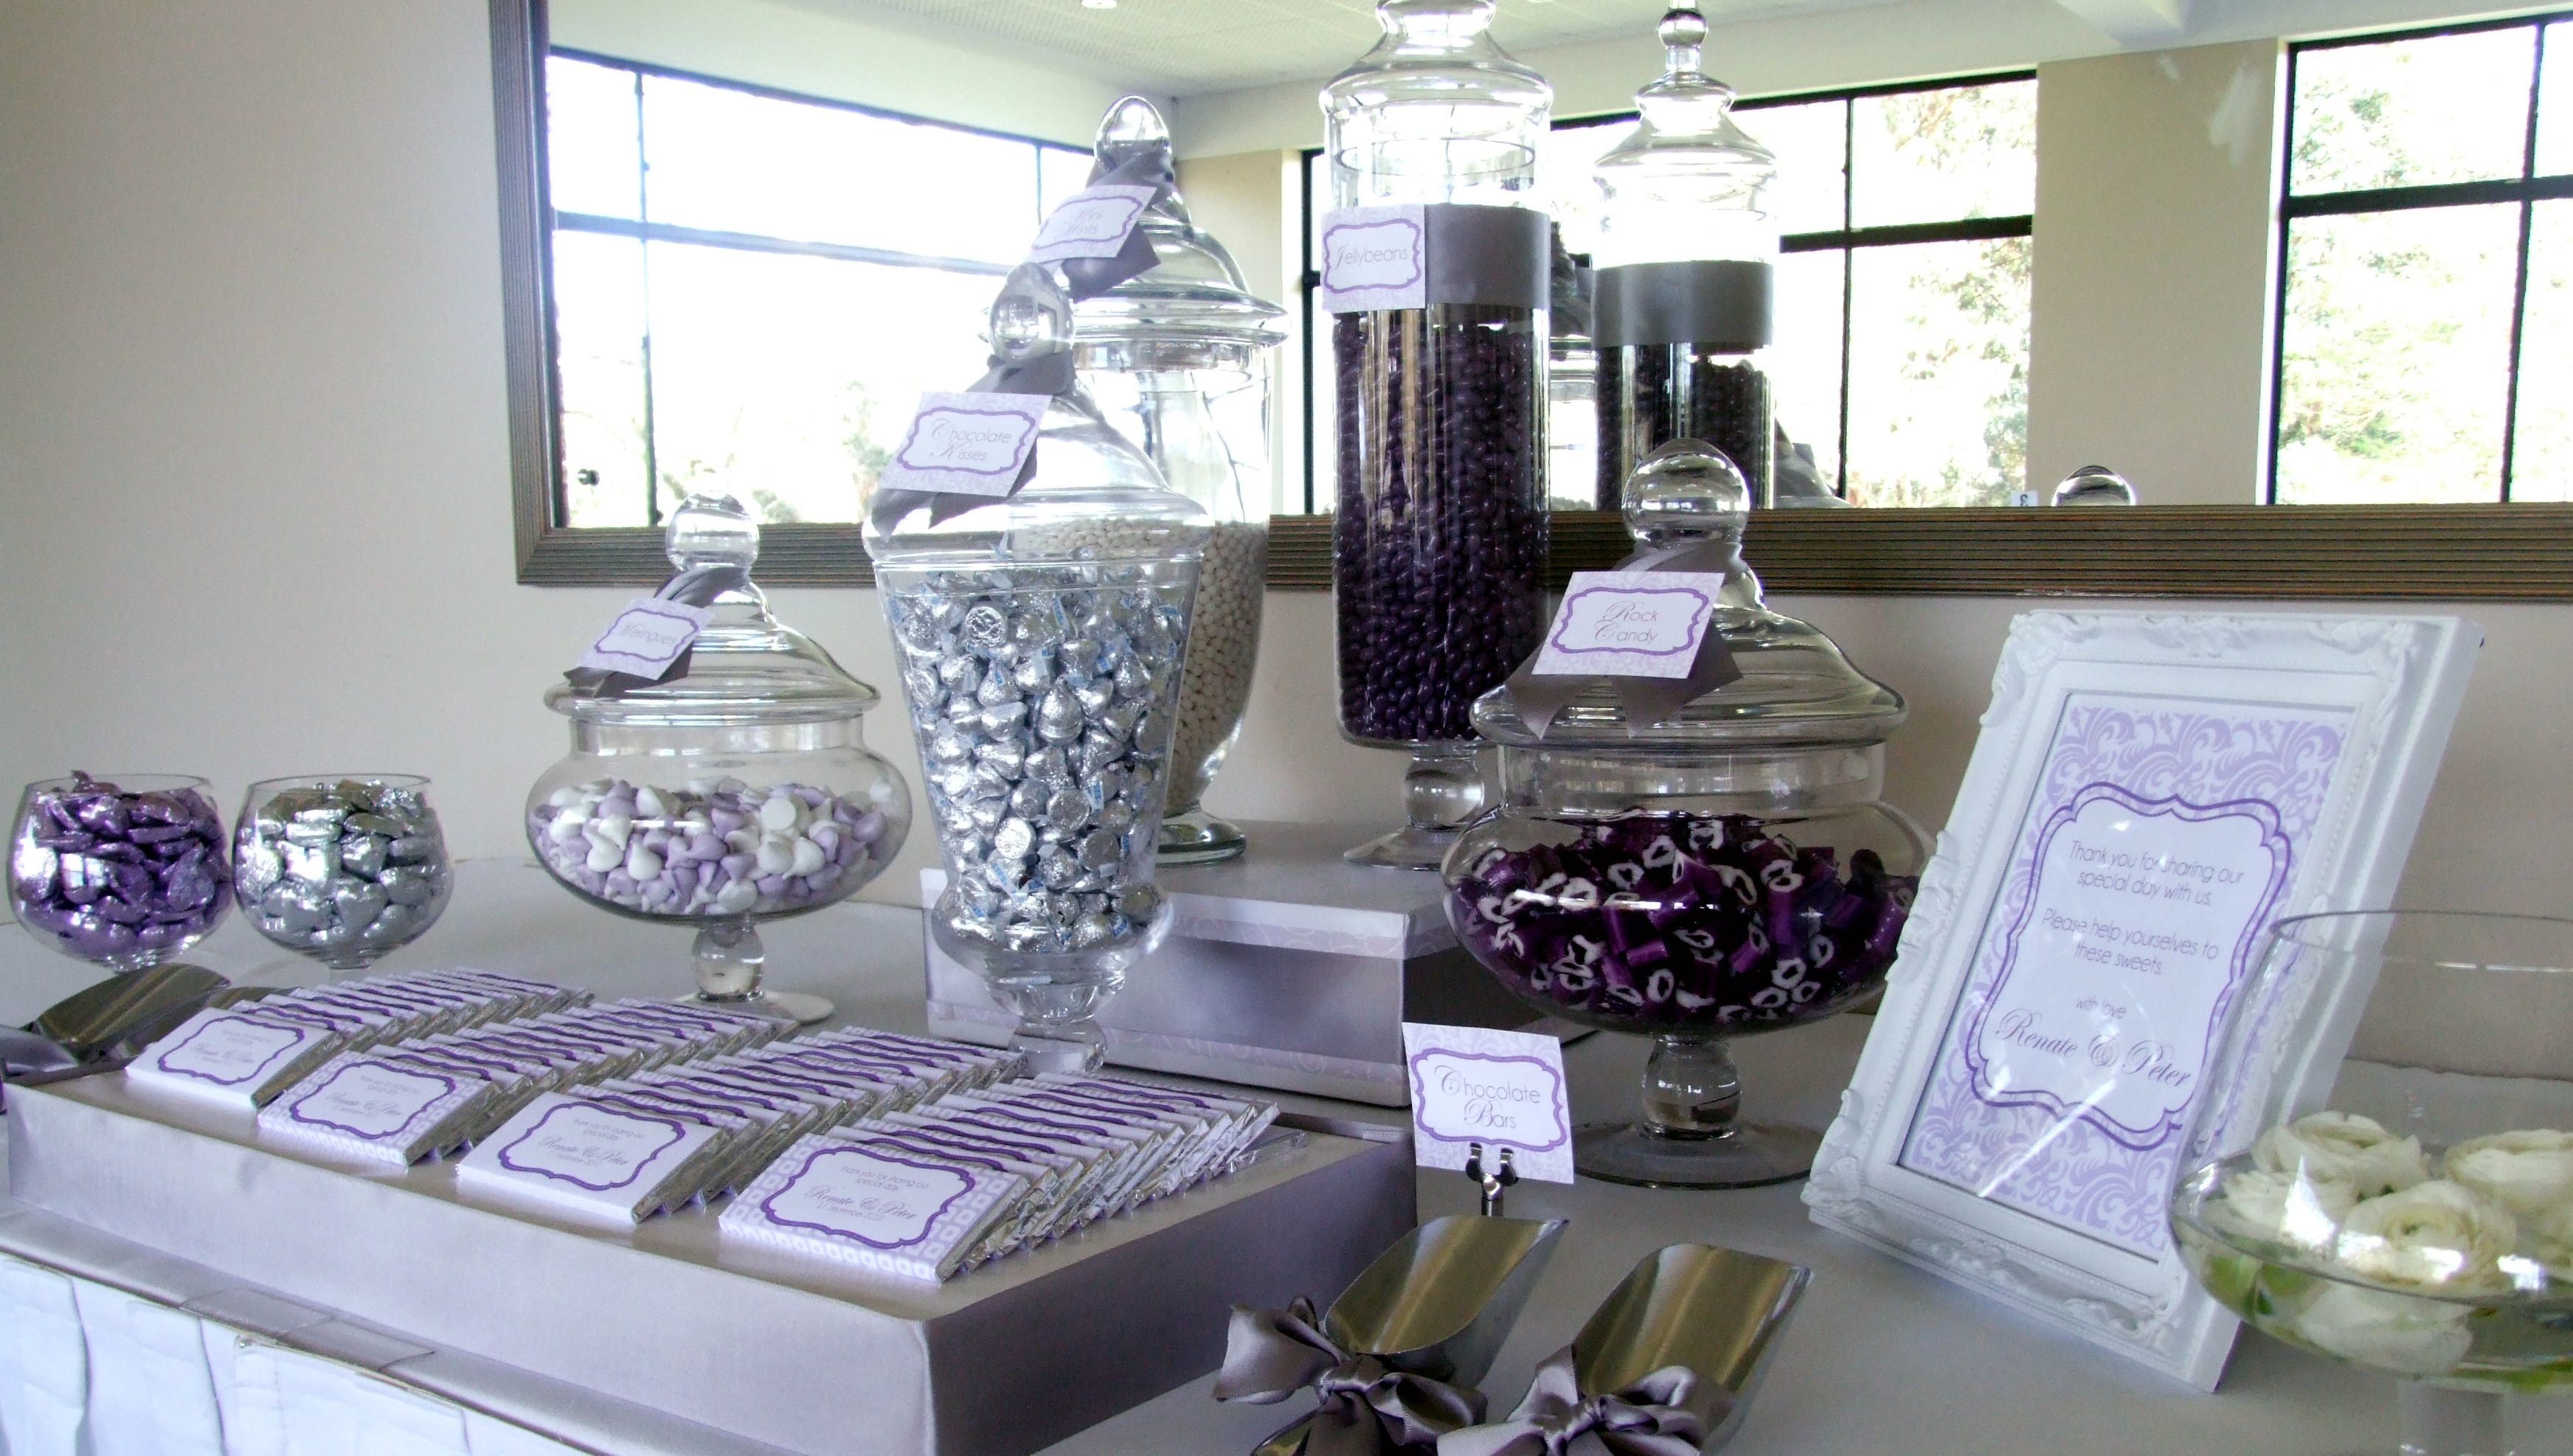 Sweet amp sparkly wedding candy buffet pictures to pin on pinterest - Purple Candy Bar Ideas For Reception As Wedding Favors